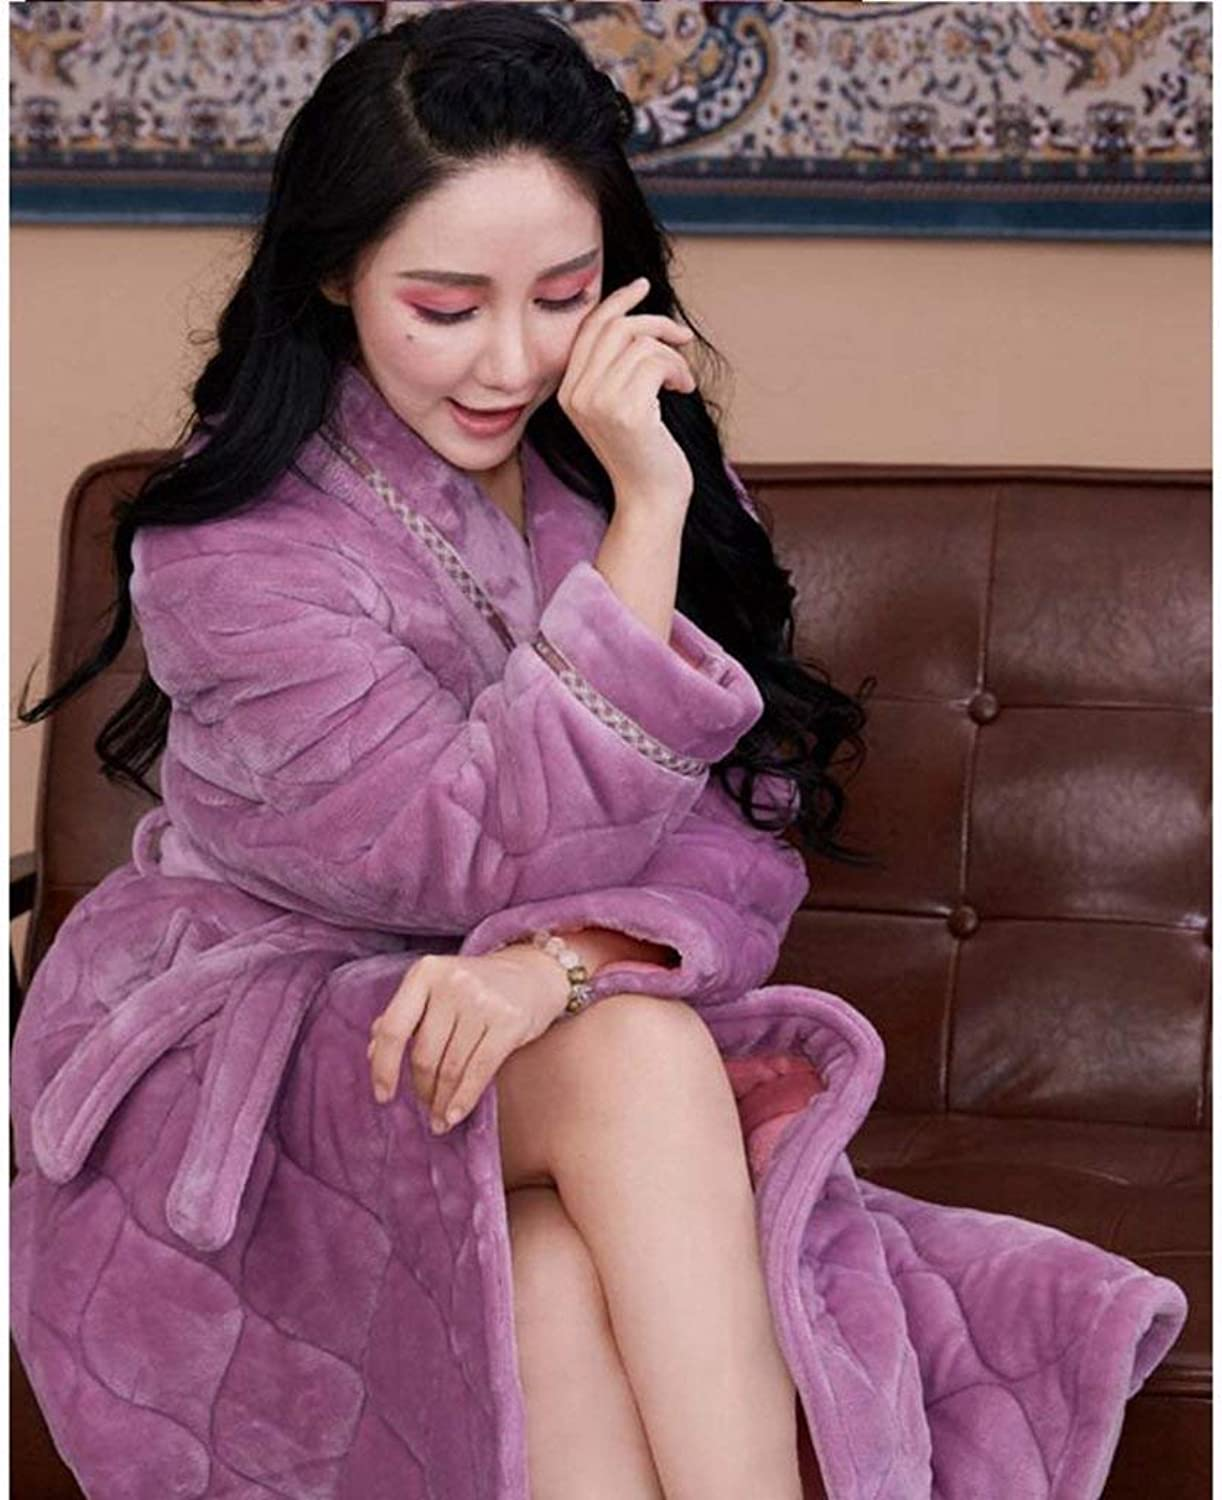 PLLP Comfortable Home Pajamas Shop Cotton with Pockets Bathrobe Female Winter Thickening Long Section Nightgown Polyester Quilted Pajamas Bathrobe Men's and Women's Home Clothes